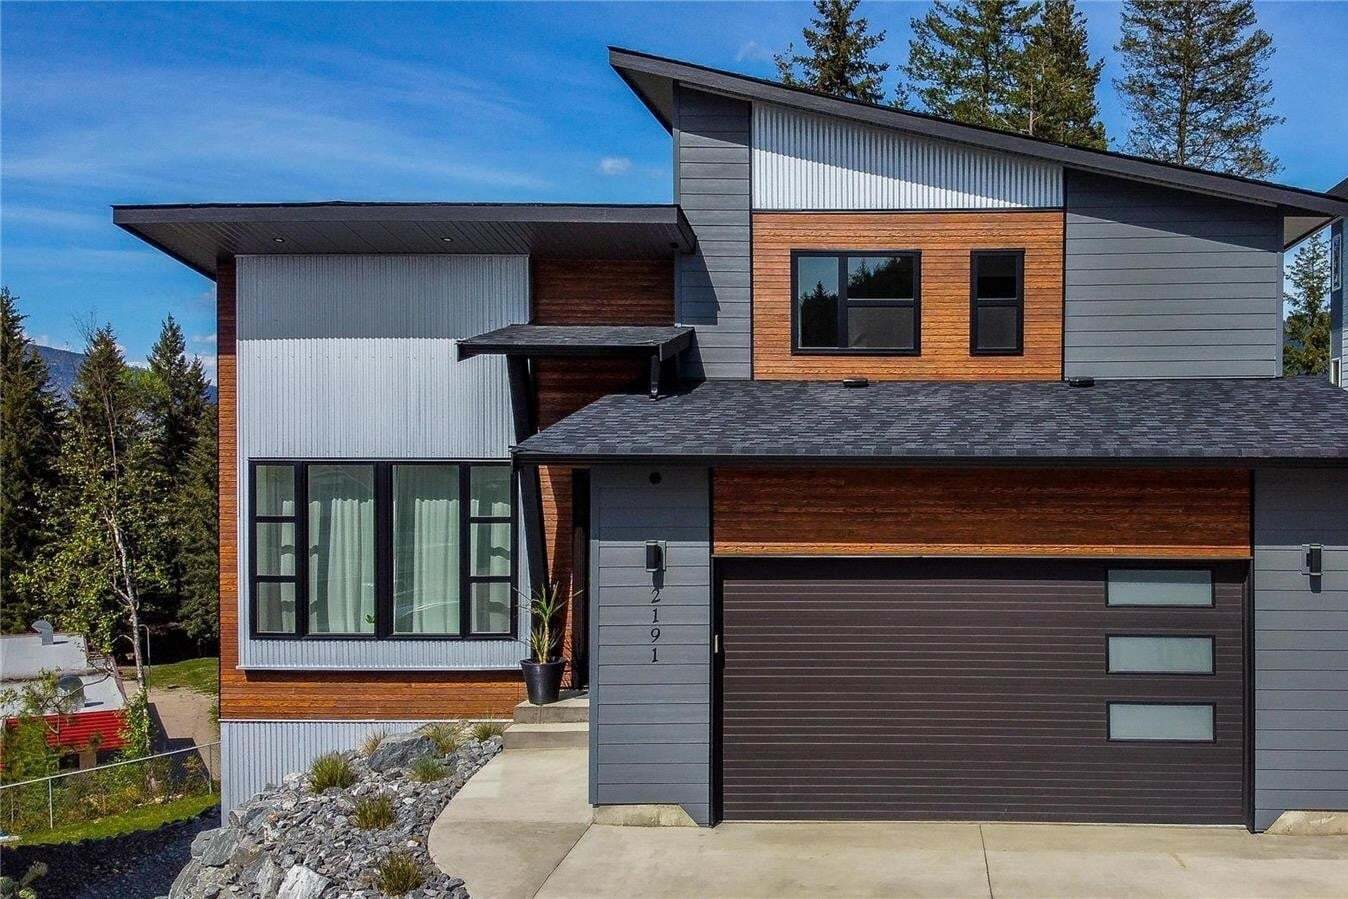 House for sale at 2191 14 Ave Southeast Salmon Arm British Columbia - MLS: 10204723